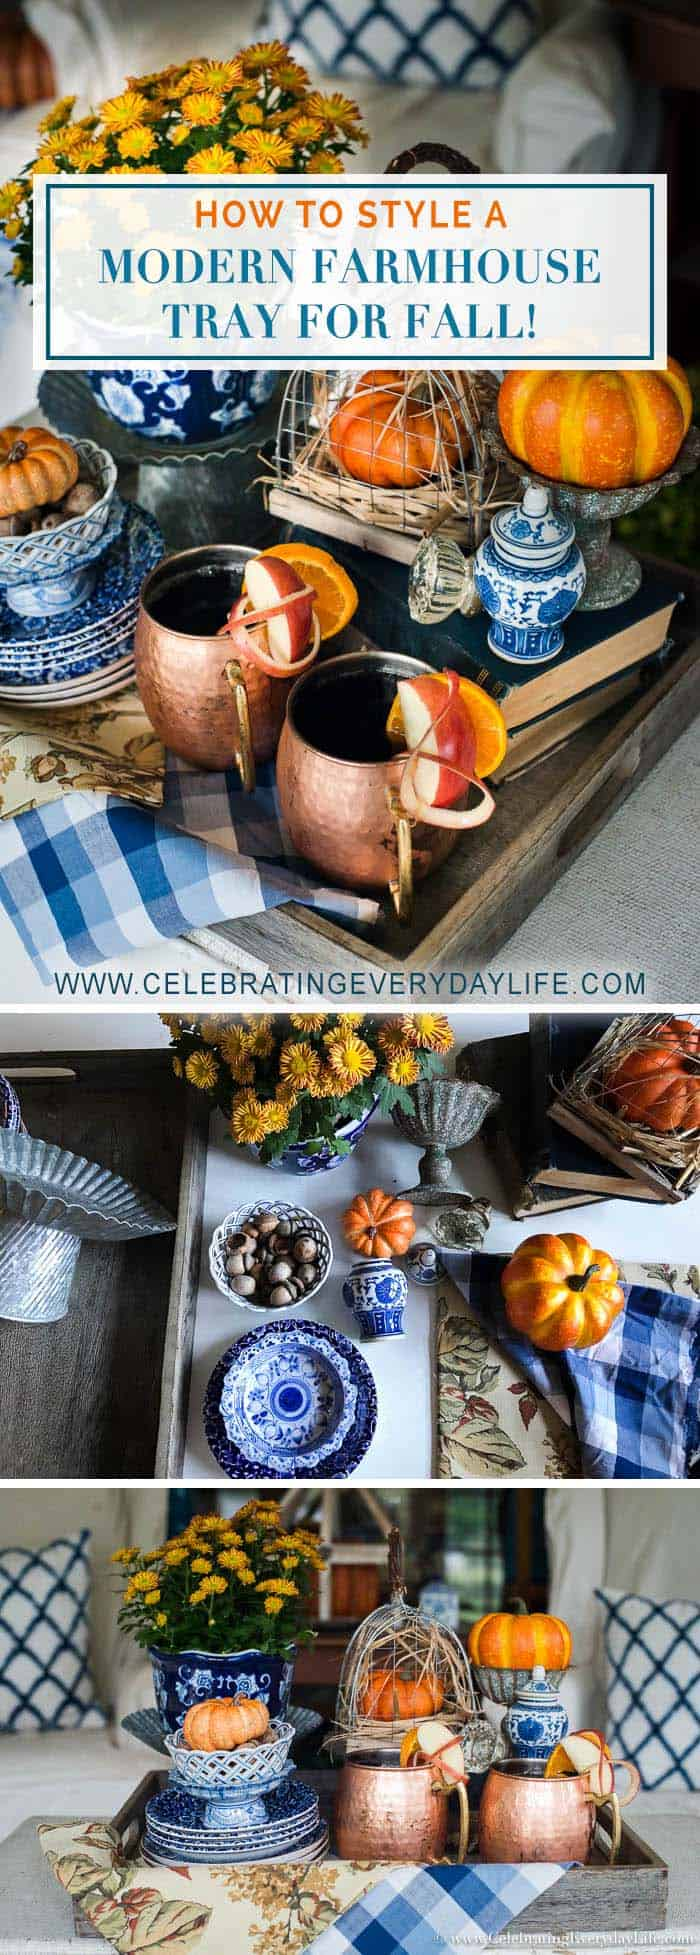 Modern Farmhouse Tray Styling Blog Hop, Tips for How to Style a Fall Tray!